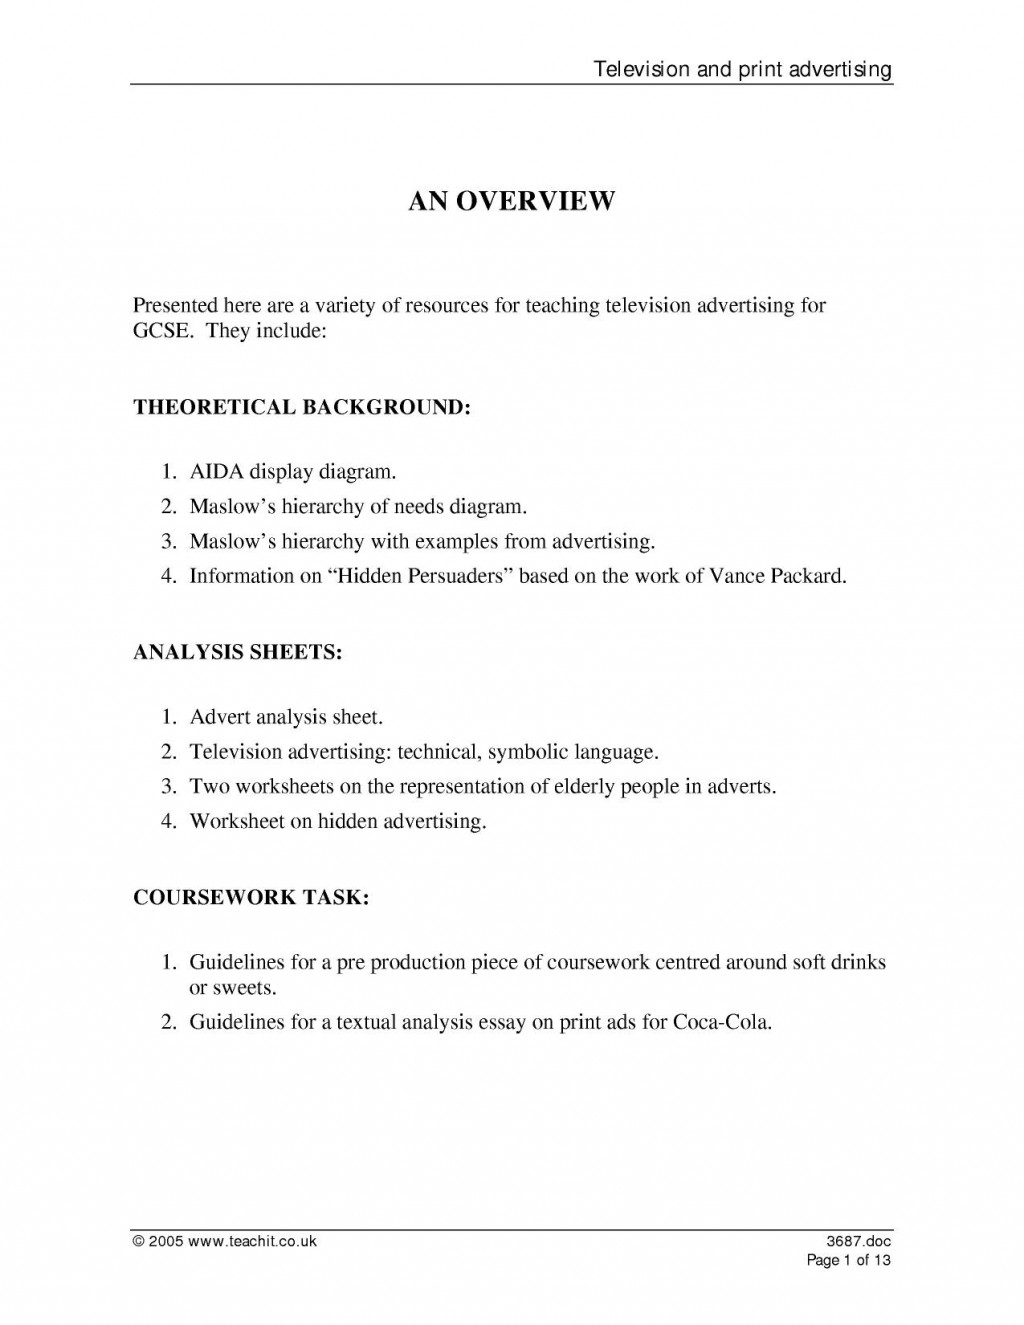 003 Essay Example Diagram Caltech Advertisement Analysis How To Write Long Quickly Proposal In One Night For Ap World History Question Apush With Little Information Us Fast Magnificent Essays Tips Application Questions Supplemental 2018 Large